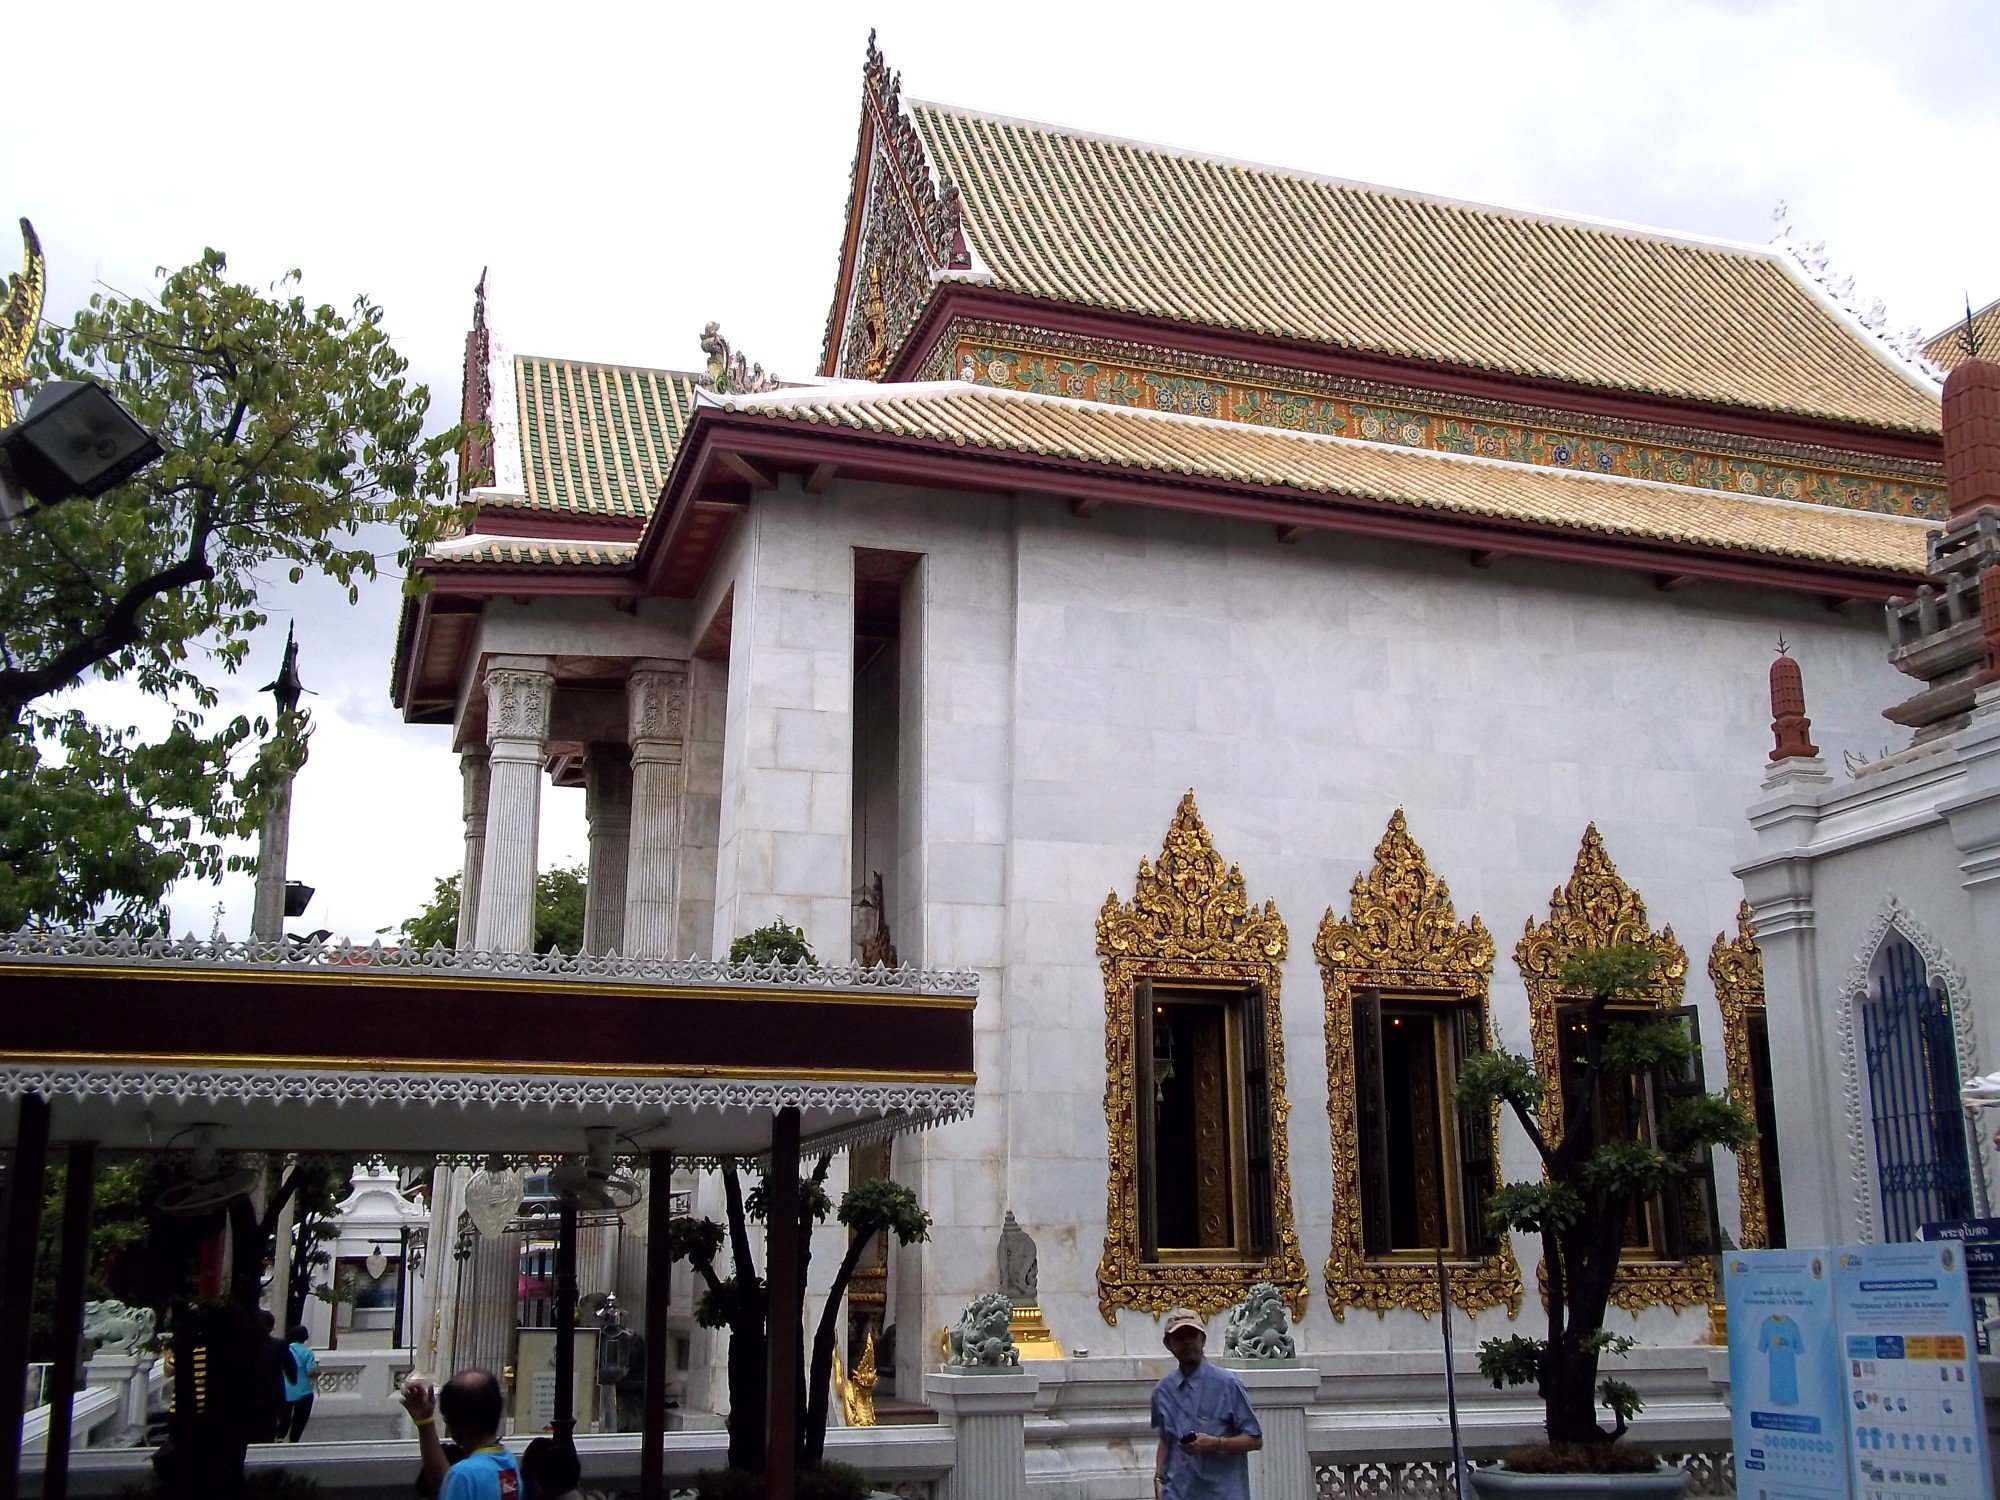 Ordination hall at Wat Bowonniwet